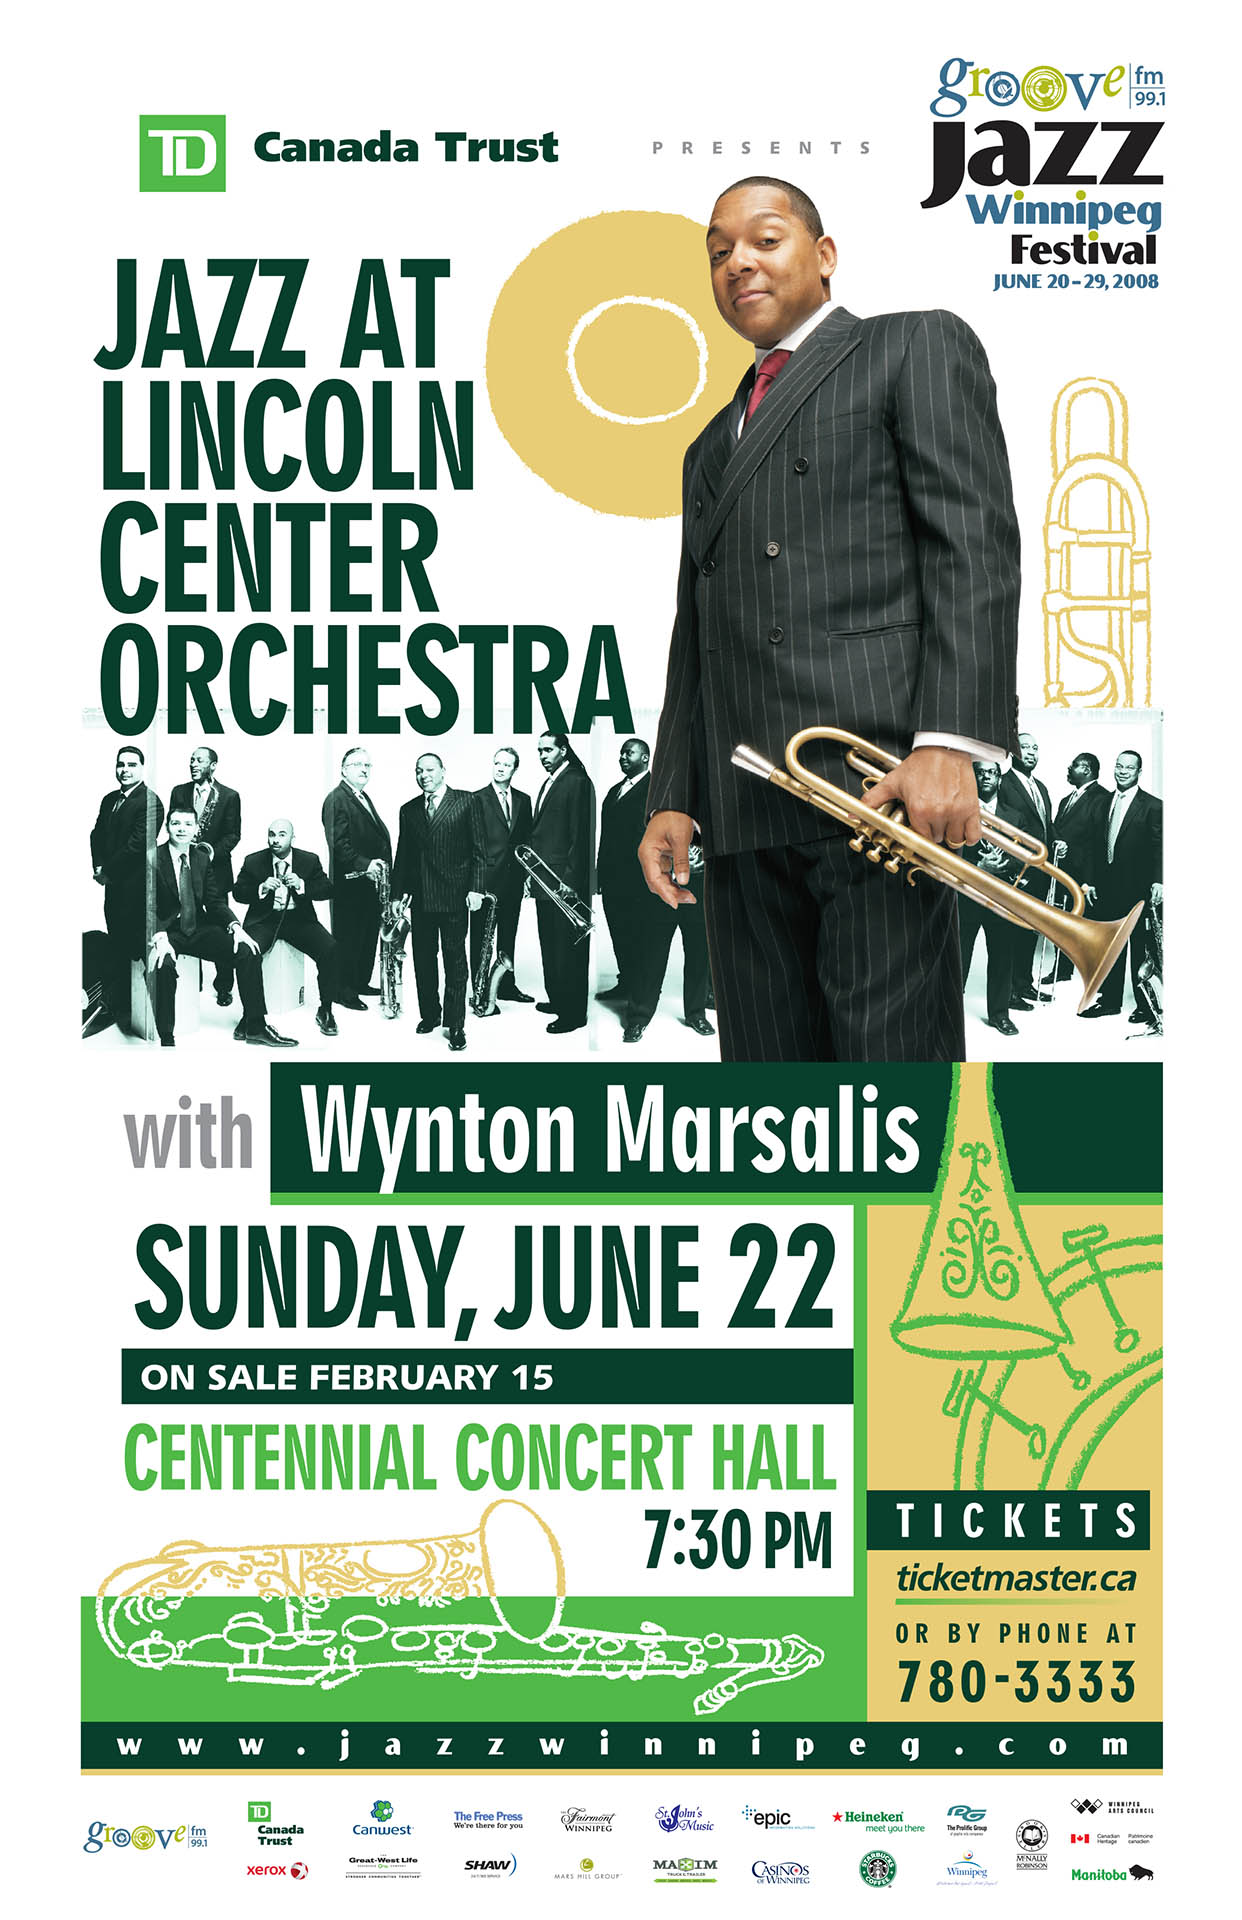 Jazz at Lincoln Center with Wynton Marsalis – 2008